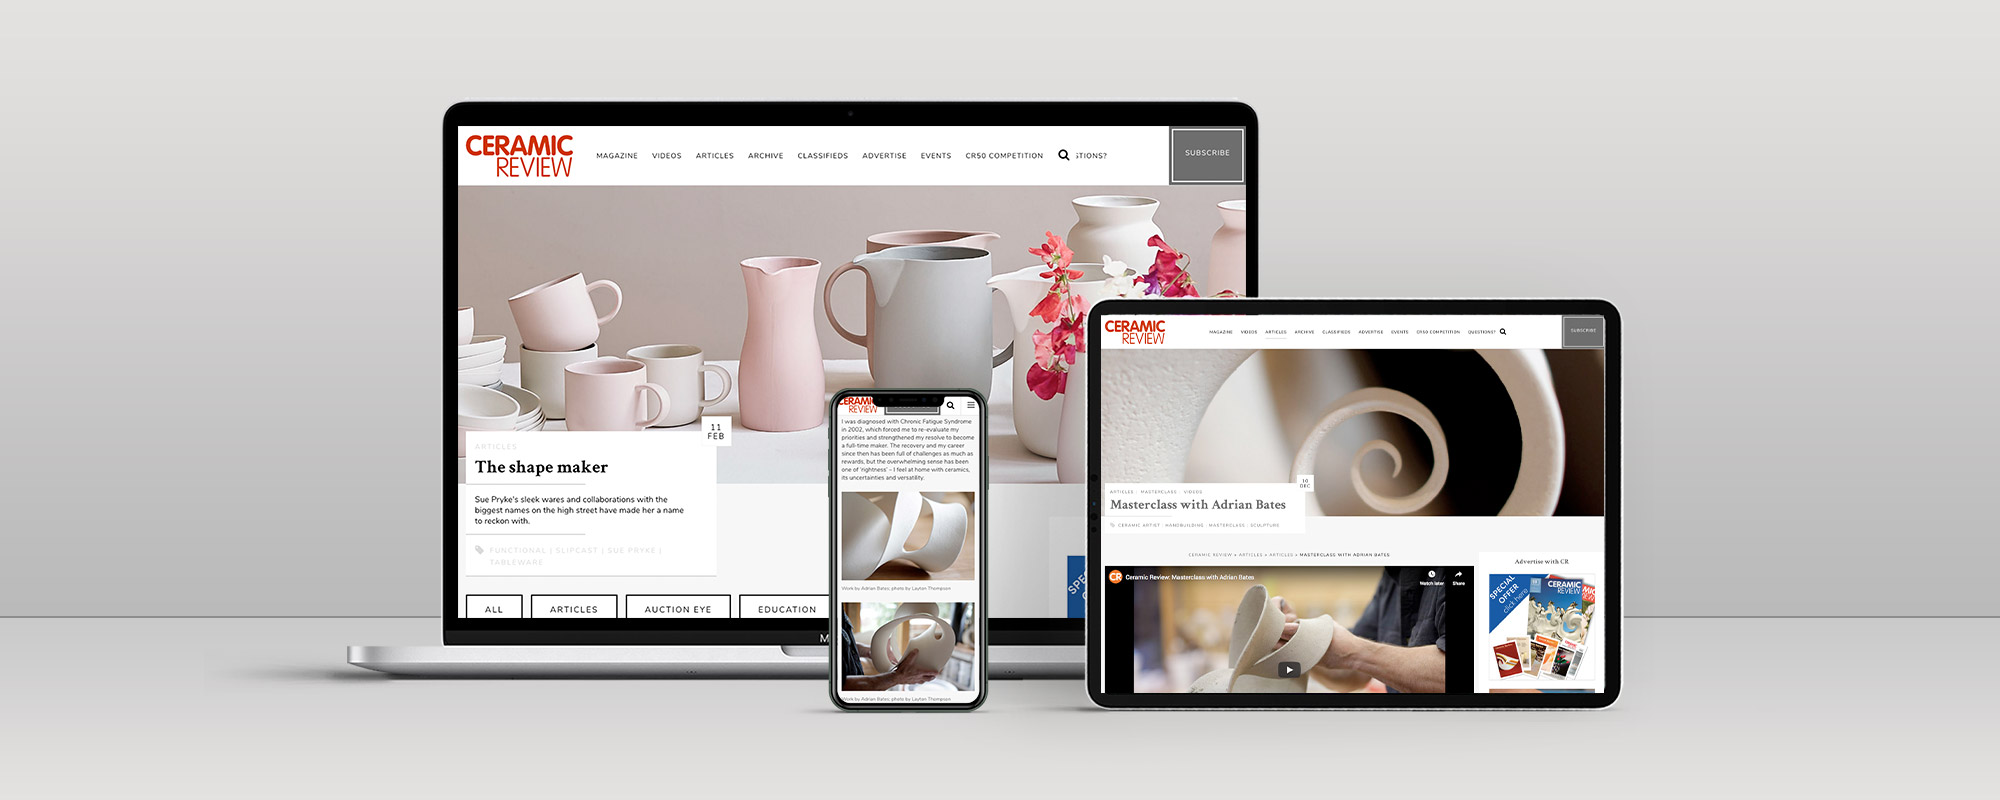 Ceramic Review Wordpress Website Design on 3 Devices